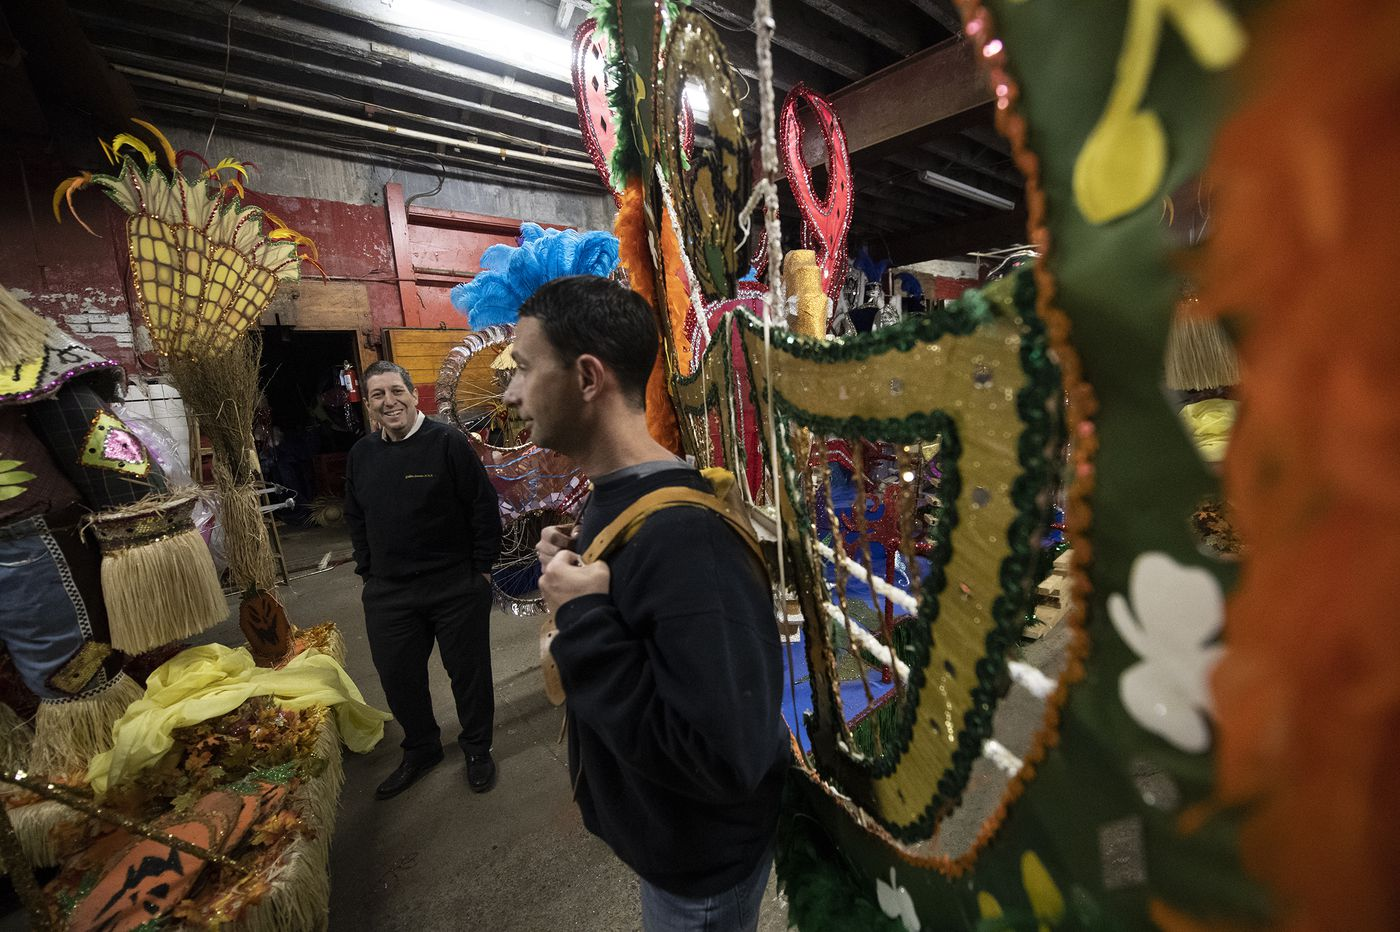 The Mummers parade is coming, home improvement loans aren't easy to get if you're a minority | Morning Newsletter